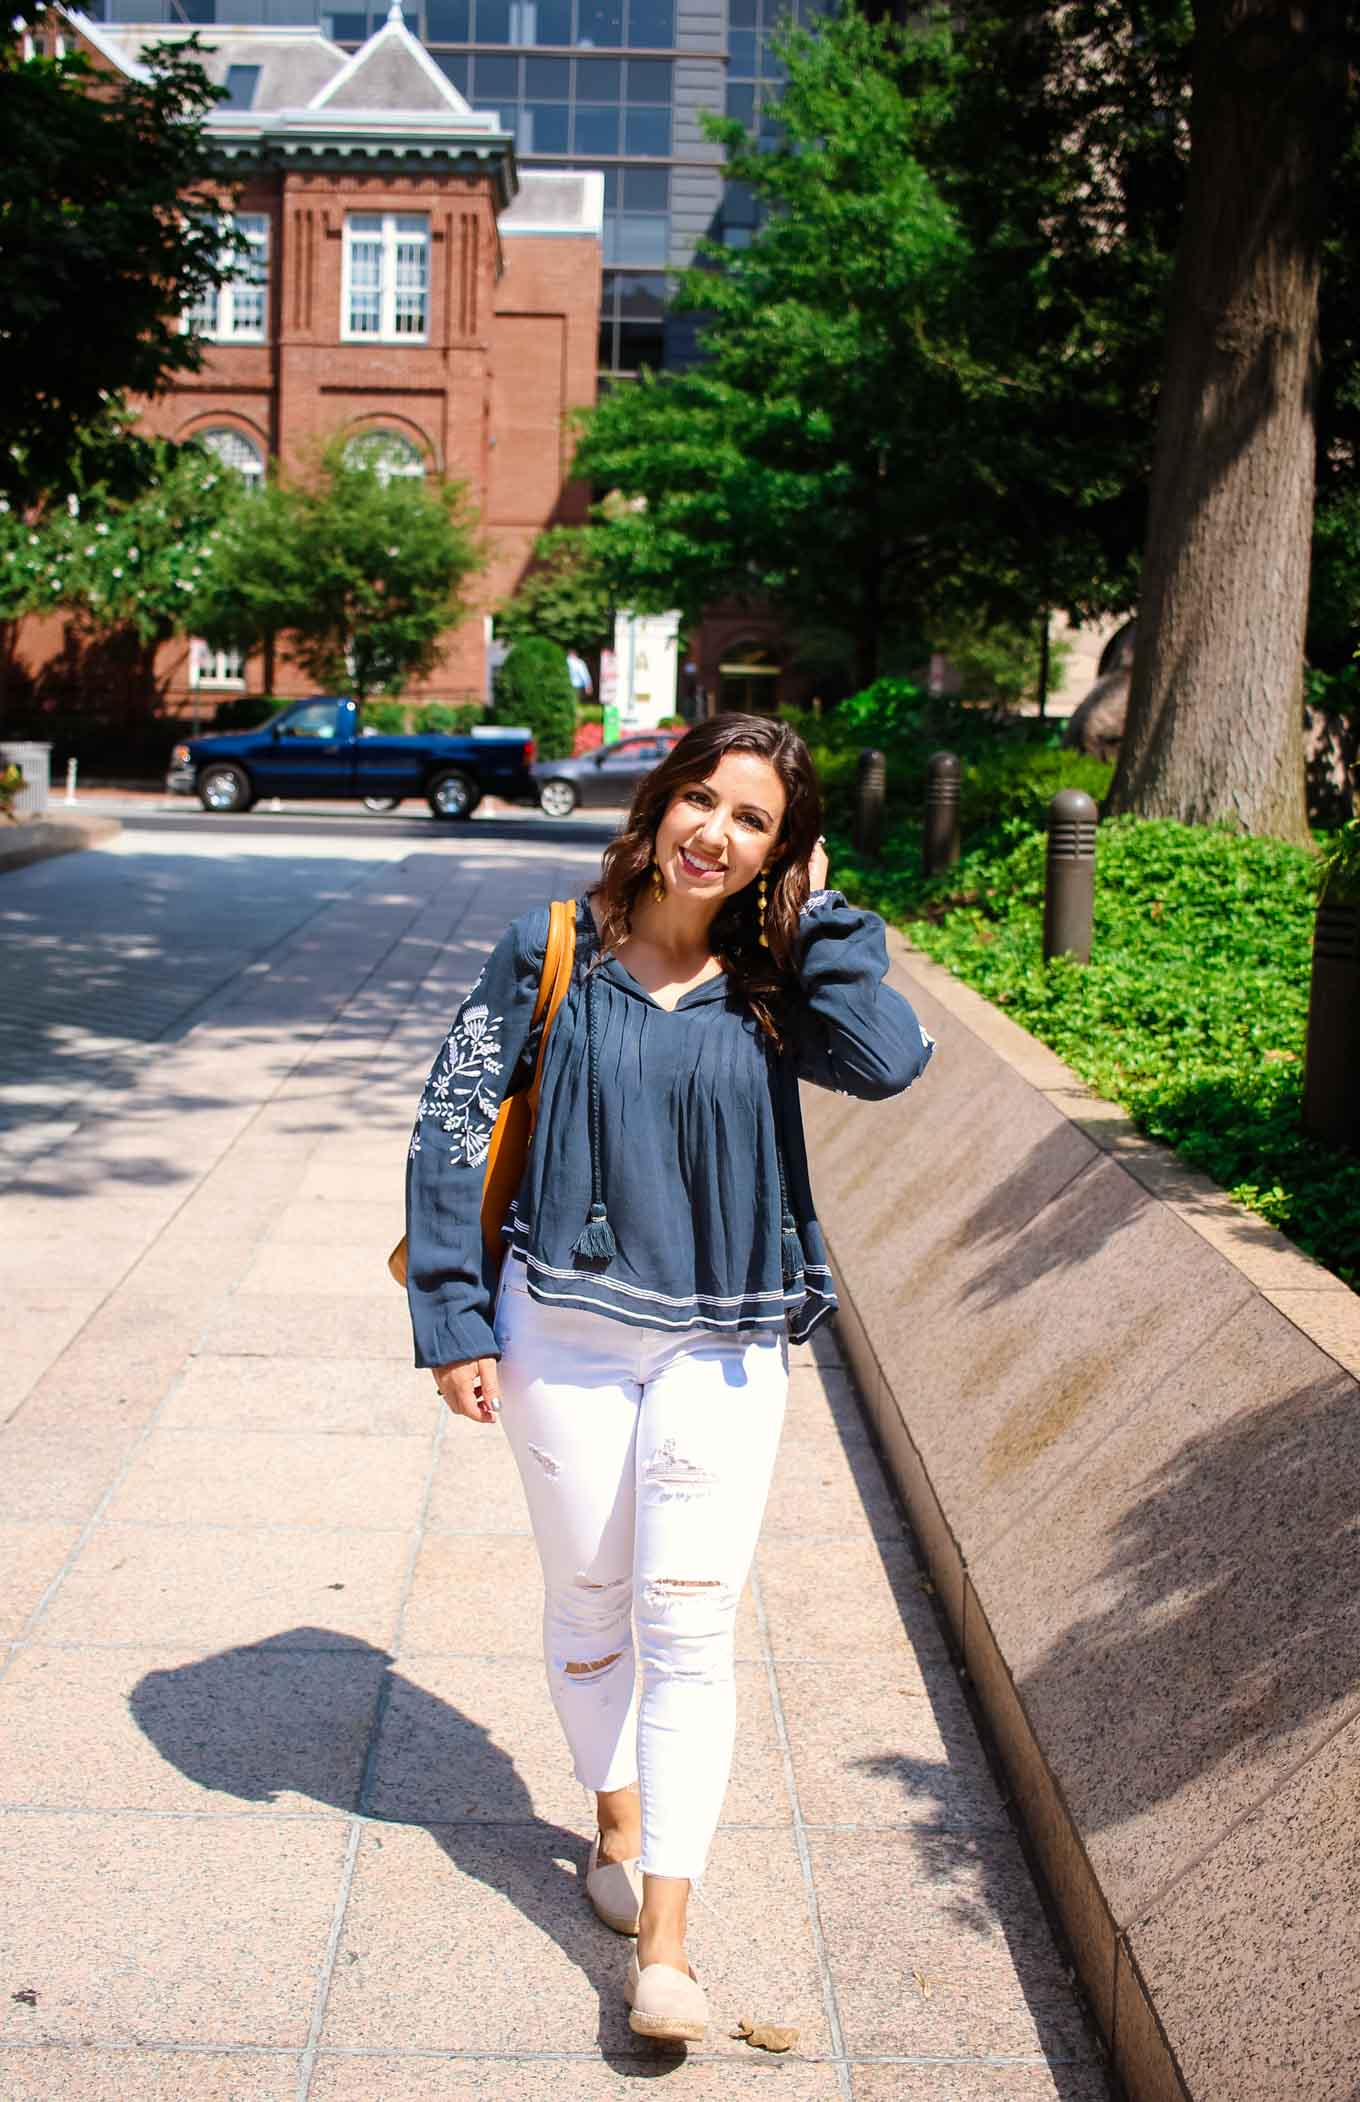 Lifestyle blogger Roxanne of Glass of Glam wearing a Tularosa blouse, Old Navy denim, 2Rivers tote, and Baublebar Earrings